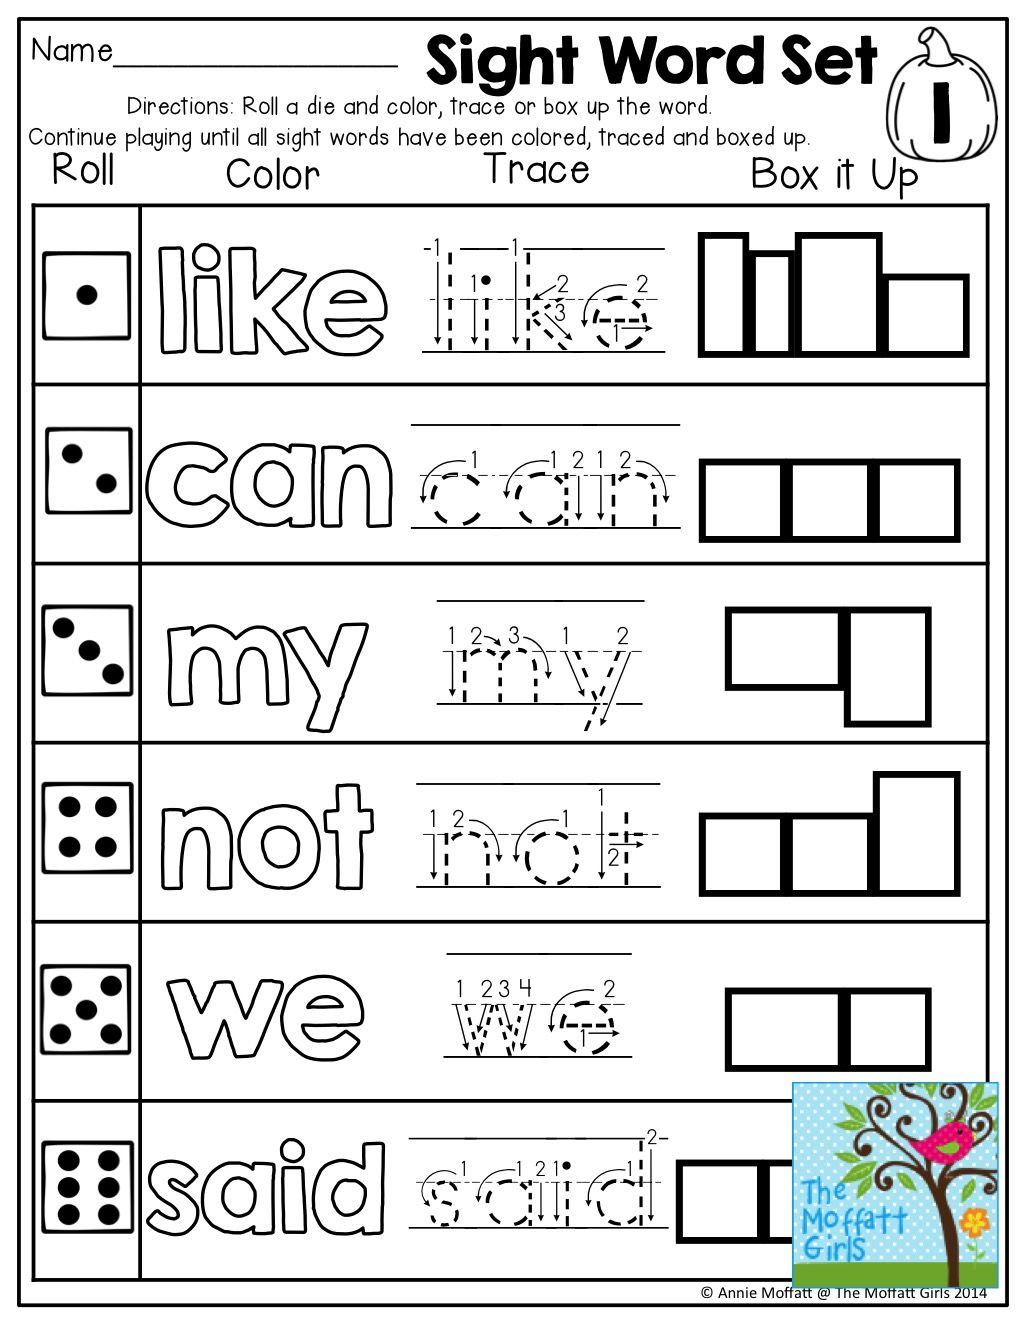 Sight Word Practice Roll A Color Trace Or Box Up A